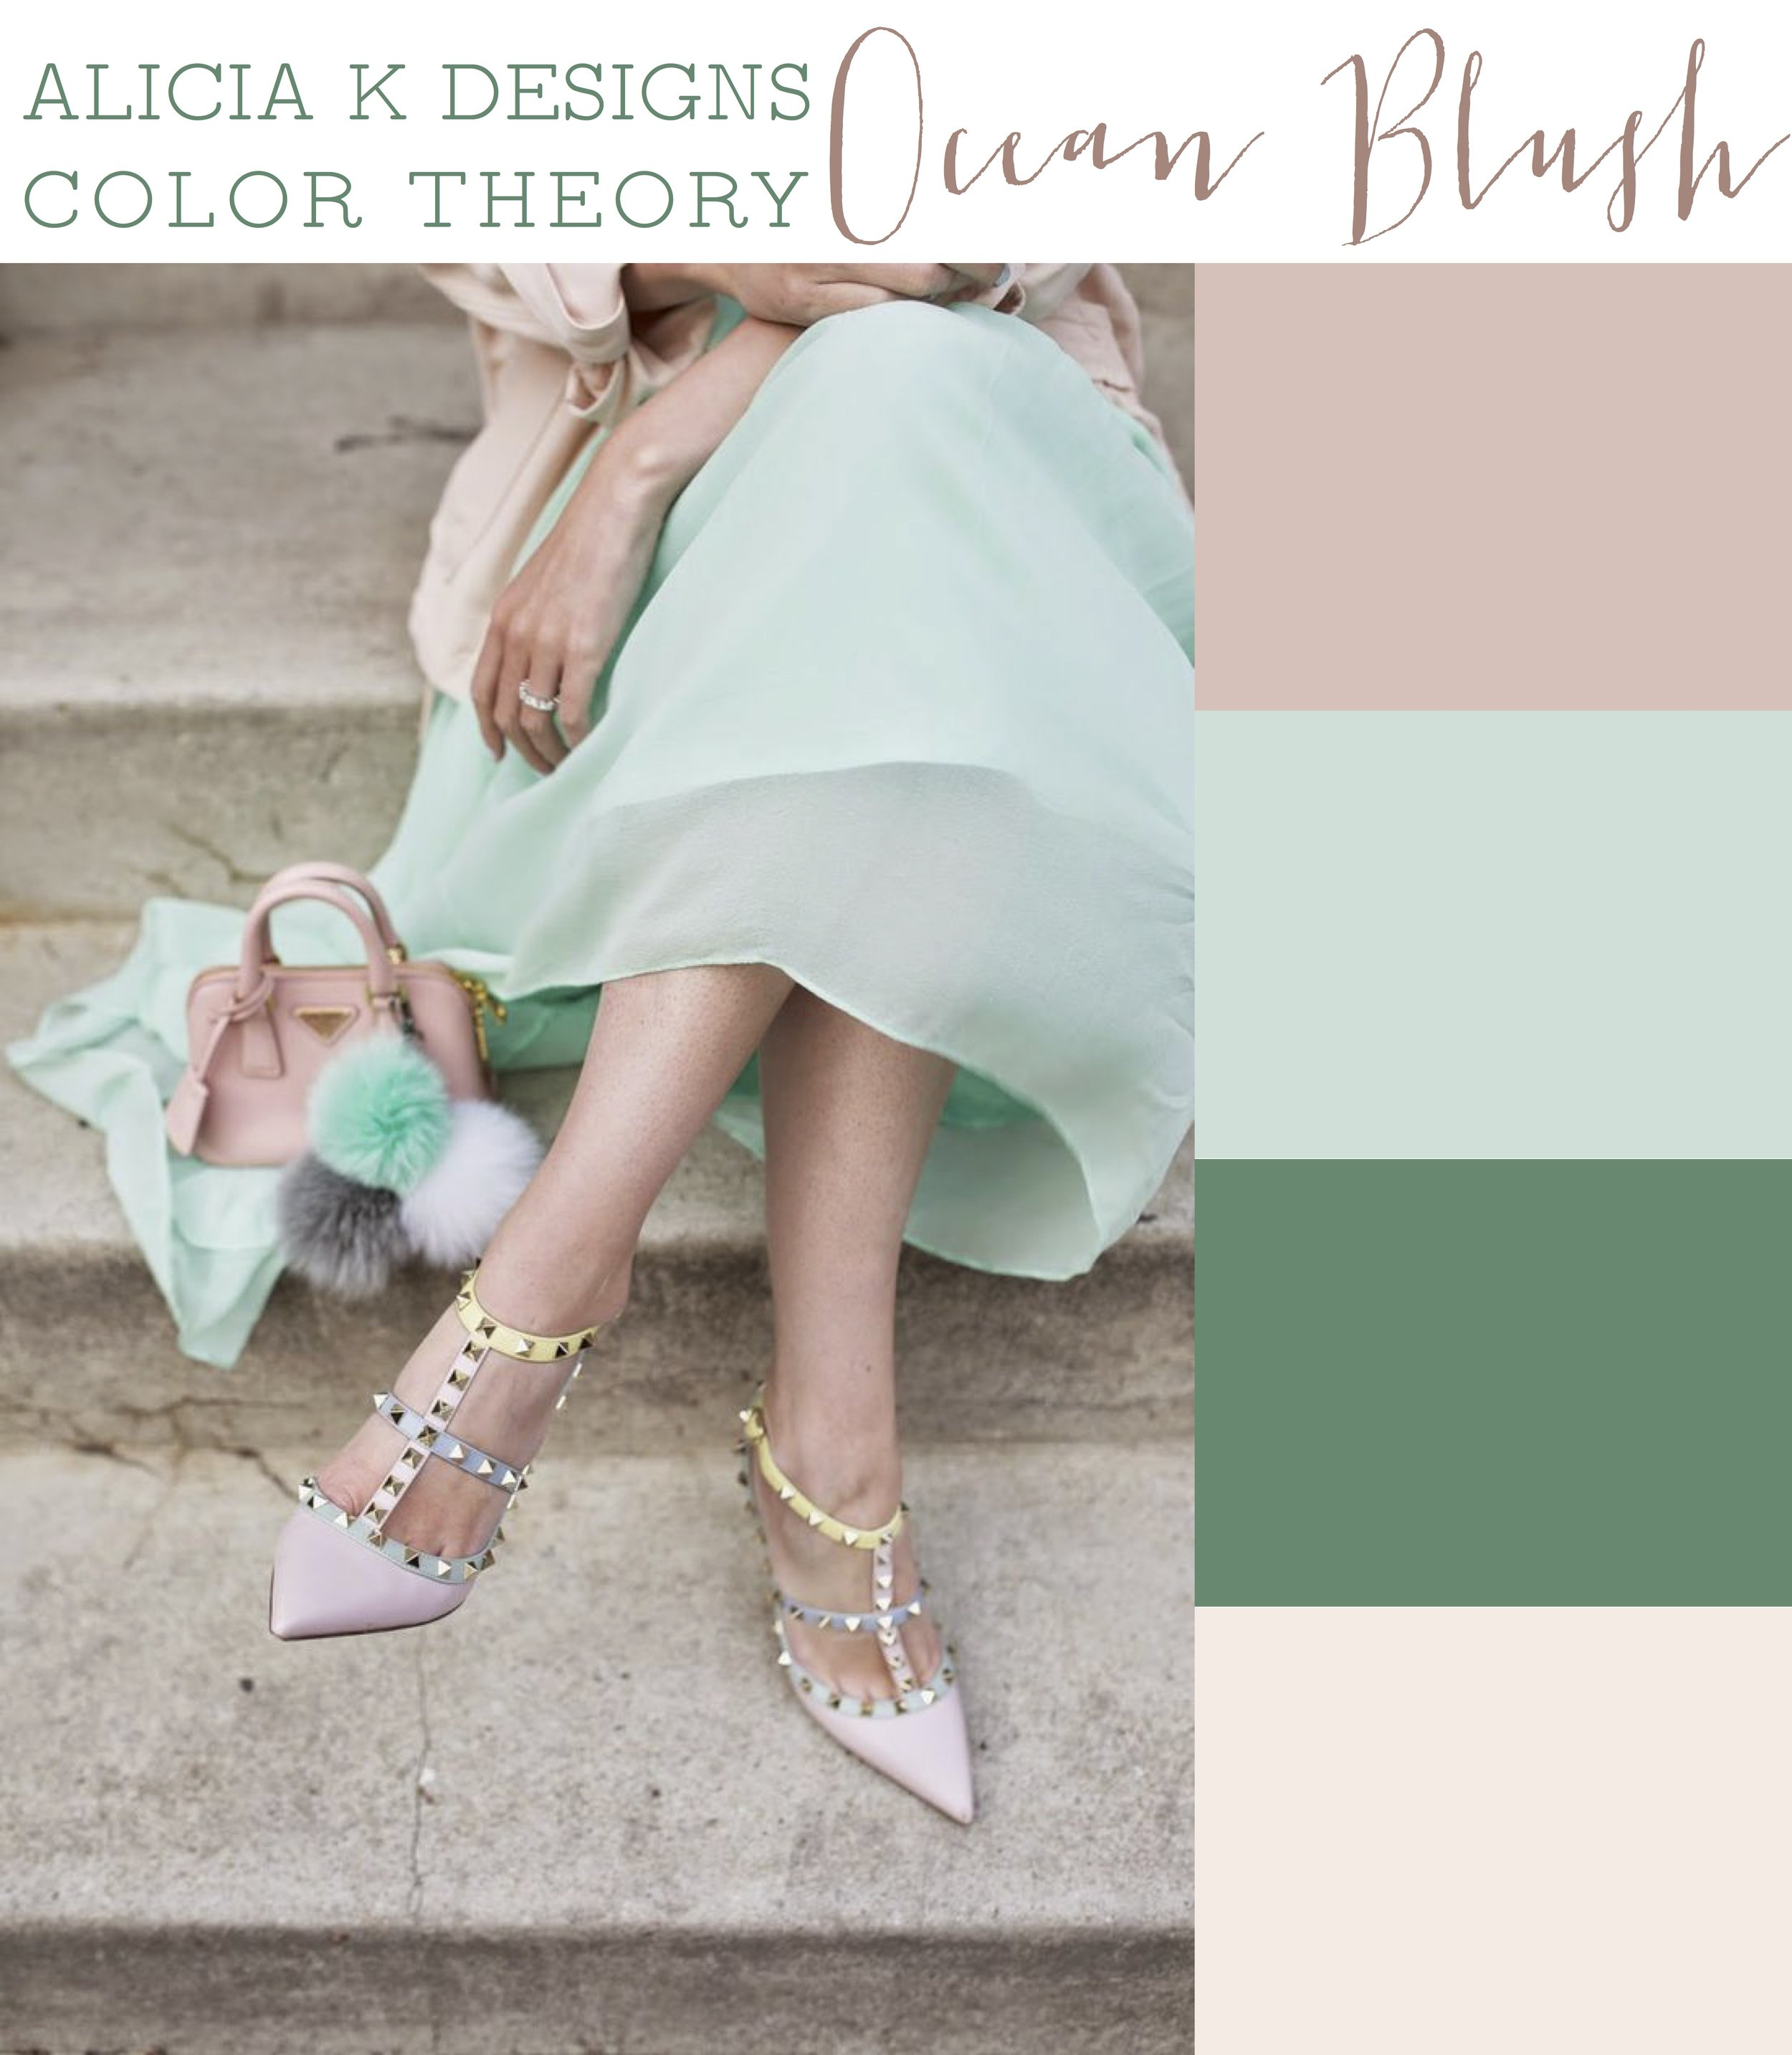 AKD Color Theory: Ocean Blush